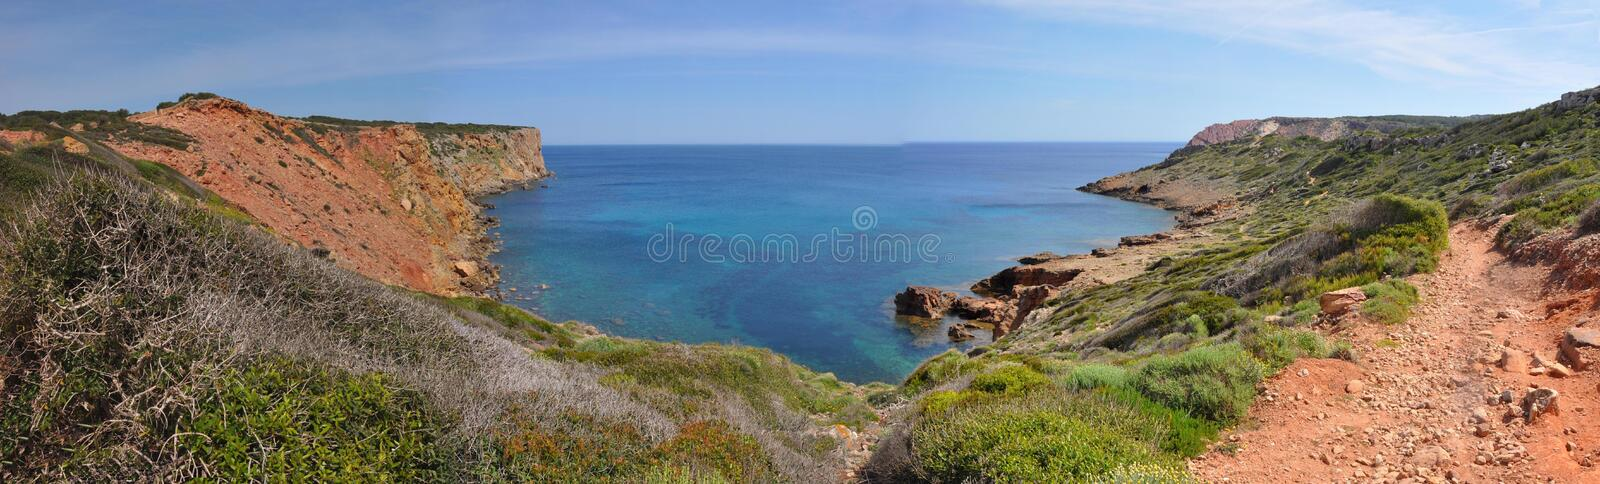 Panoramic view over bay on Spanish island Menorca stock images